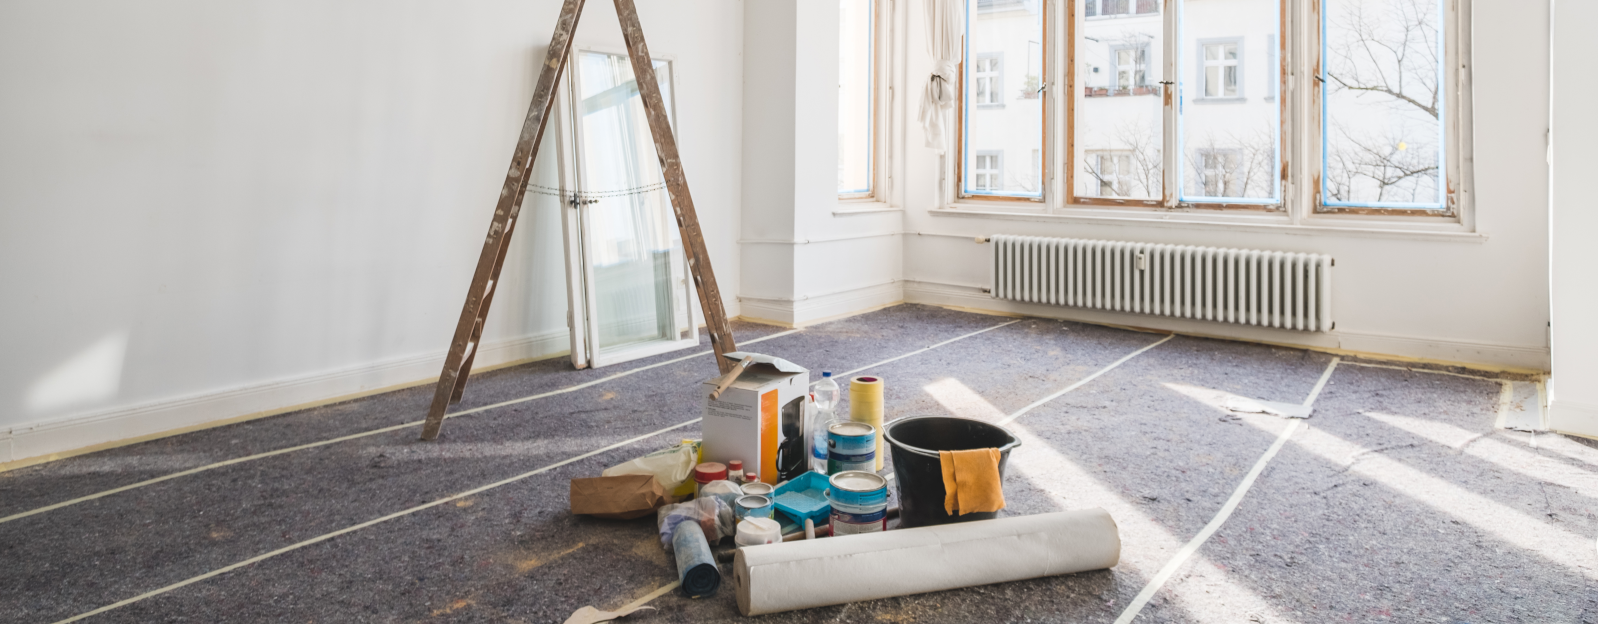 Insuring your home renovations